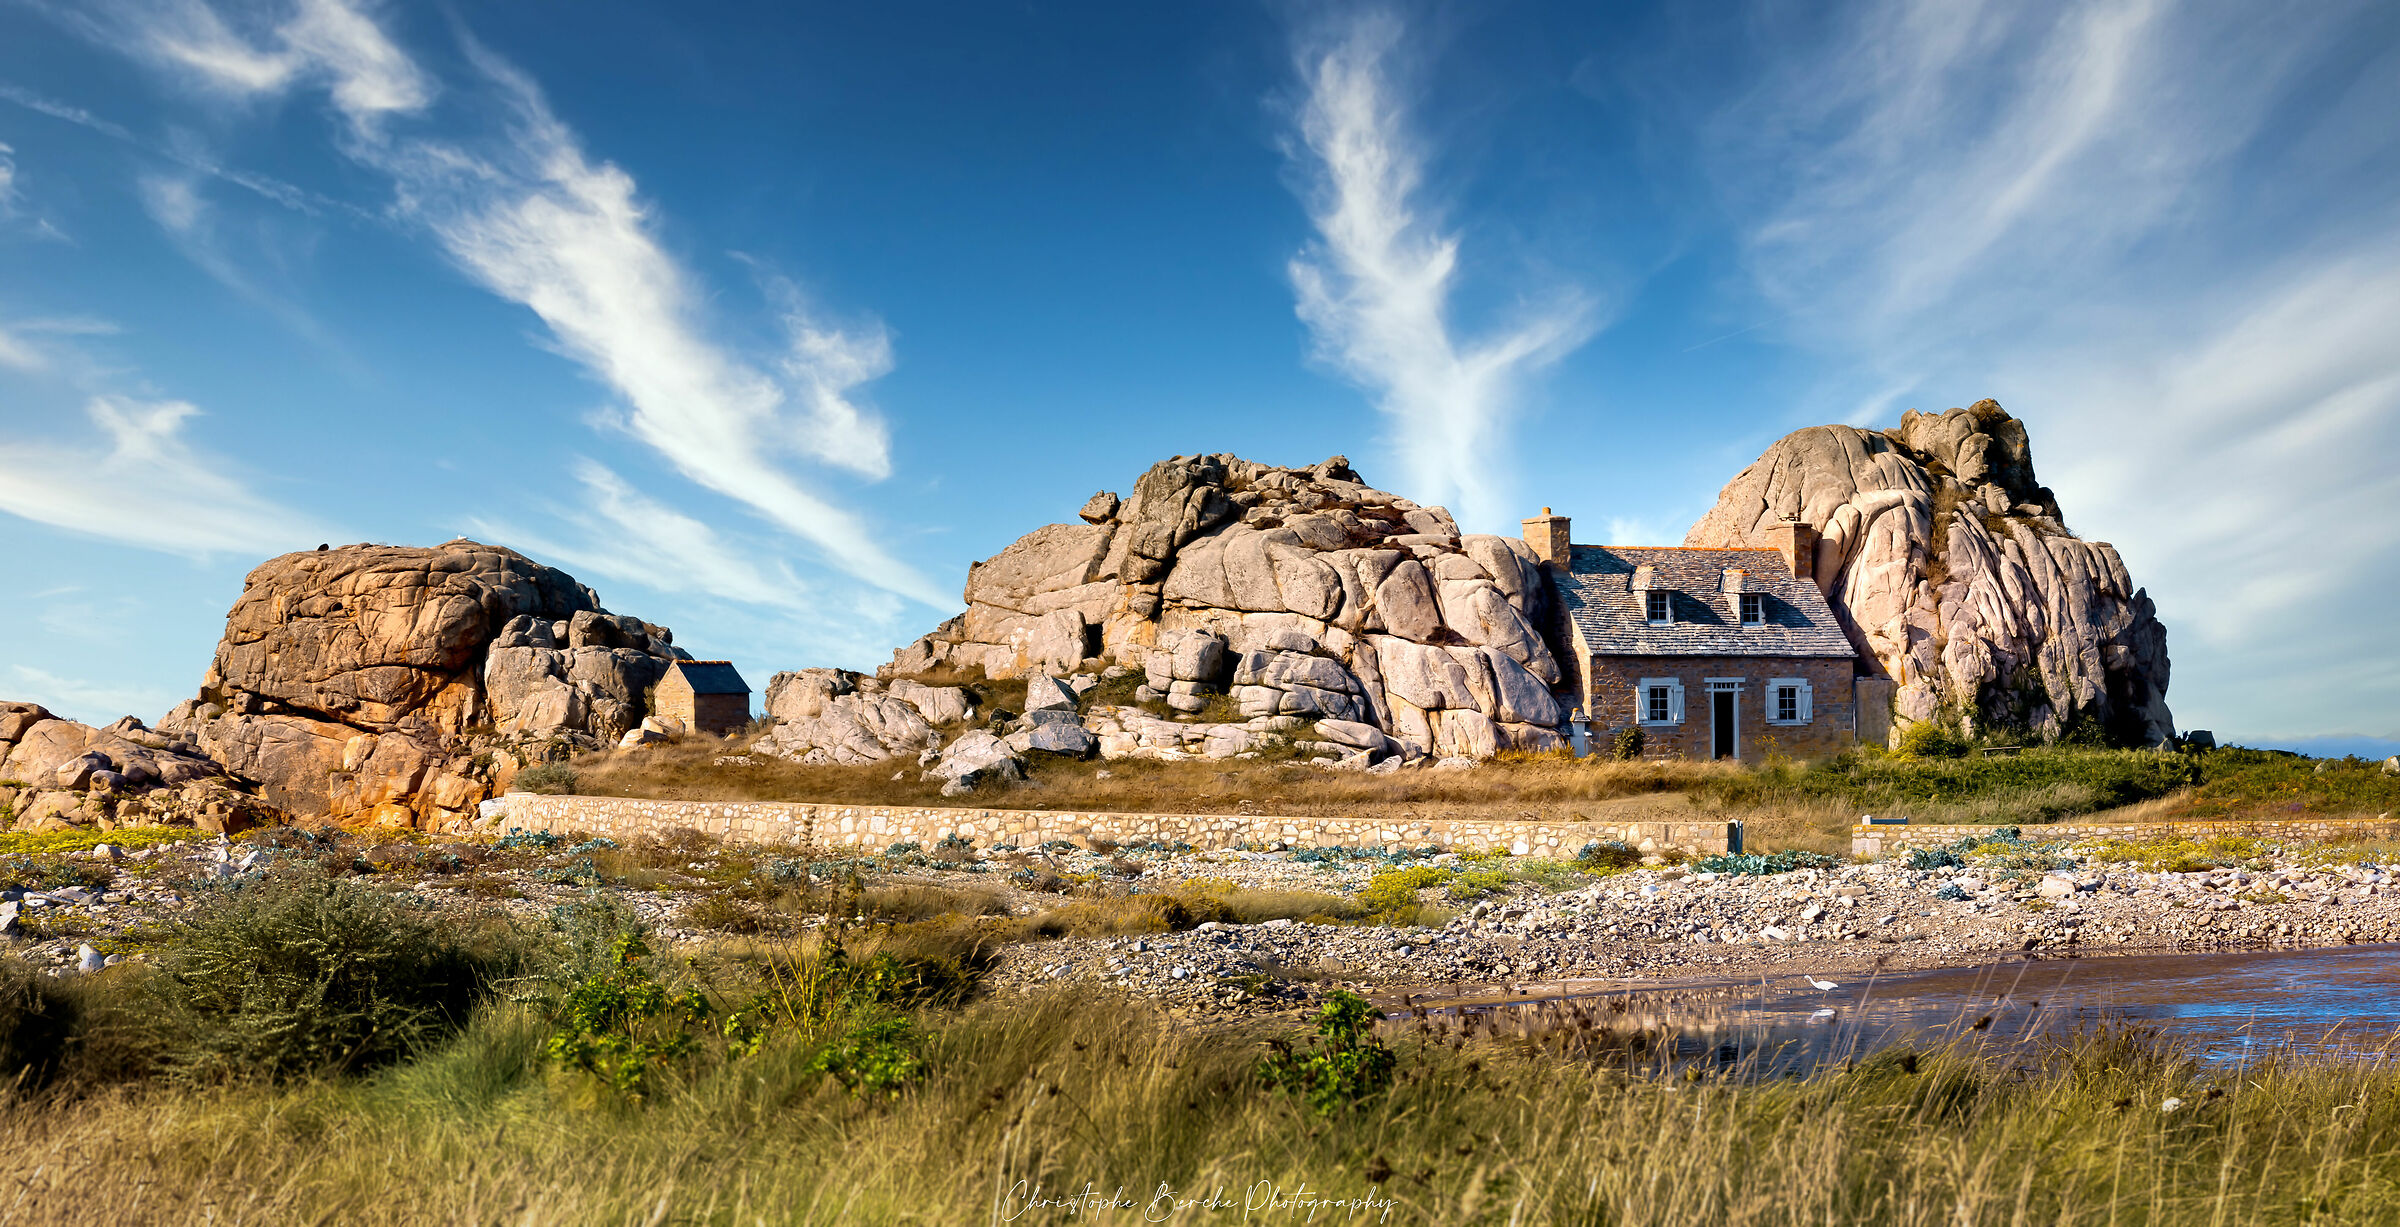 the house between the rocks...